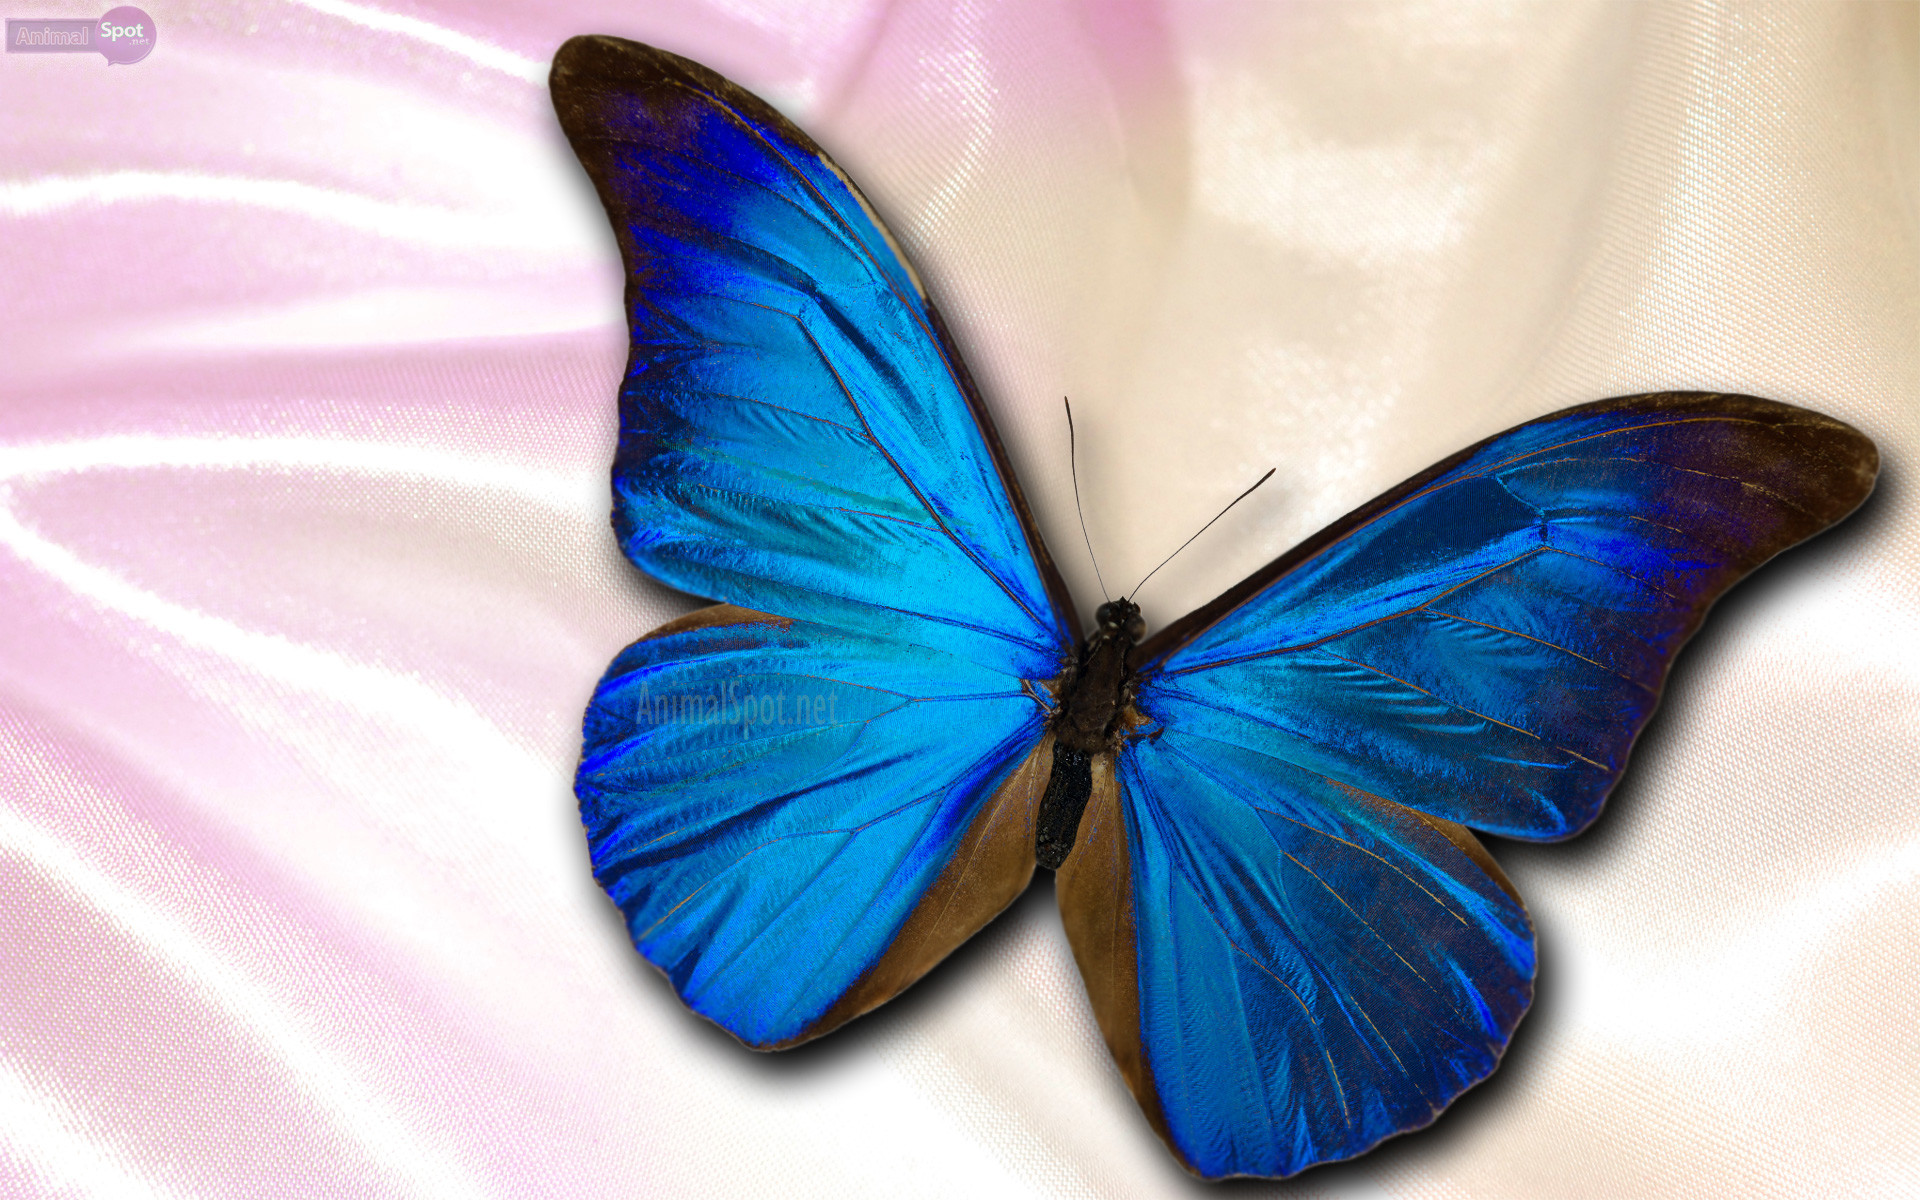 Butterfly Hd Wallpaper 68 Images